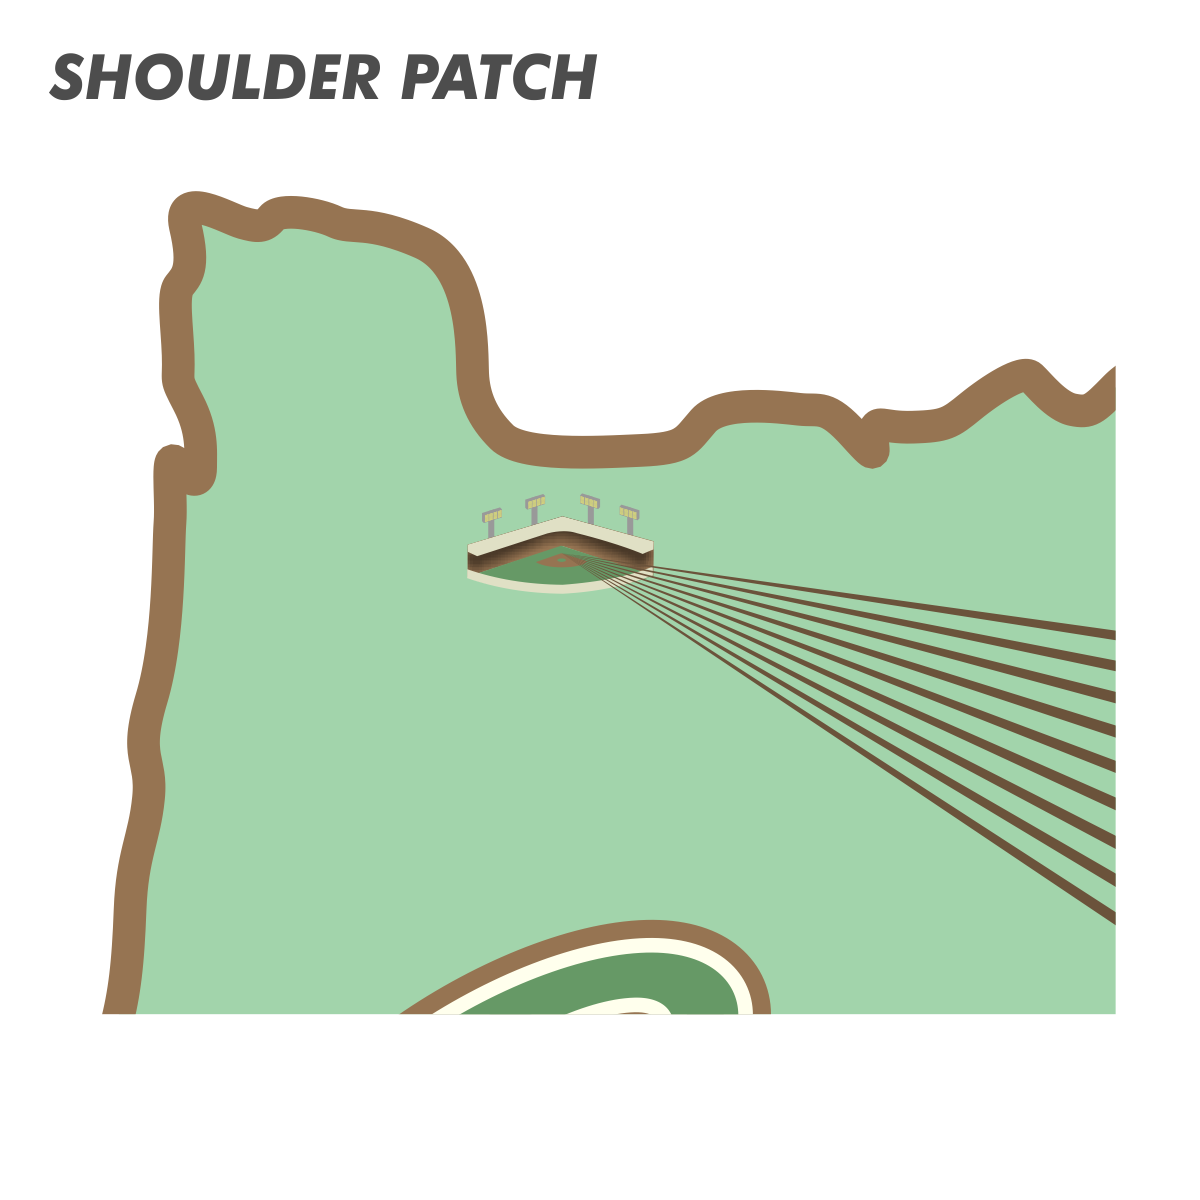 shoulder patch2.png